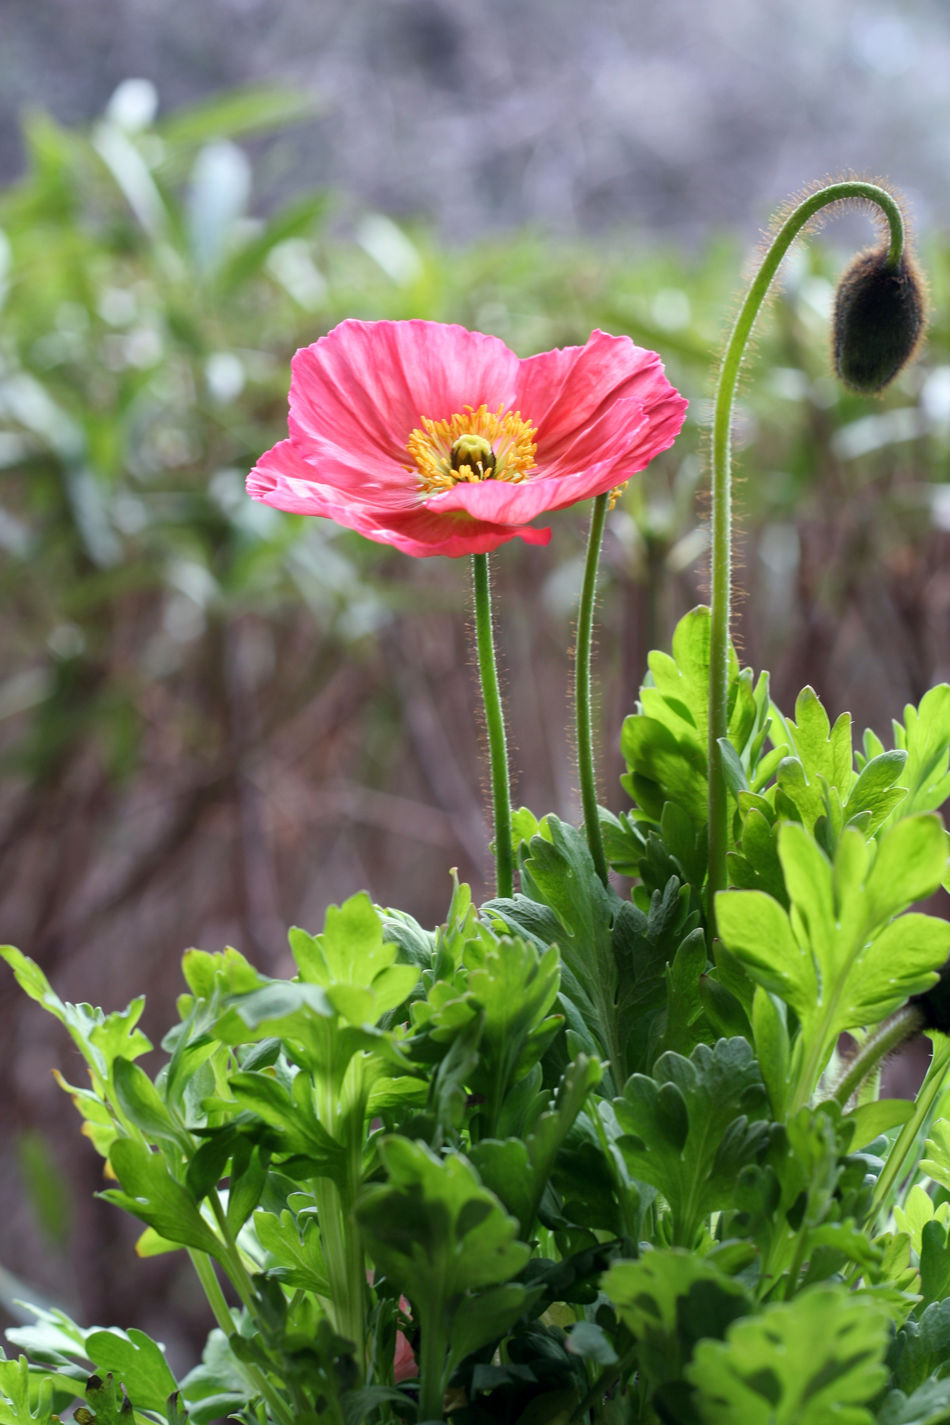 Beauty In Nature Blooming Close-up Day Flower Flower Head Focus On Foreground Fragility Freshness Green Color Growth Leaf Nature No People Outdoors Petal Plant Poppi Poppi Flo Poppies  Poppy Flower Poppy Flowers Red Color Red Flower